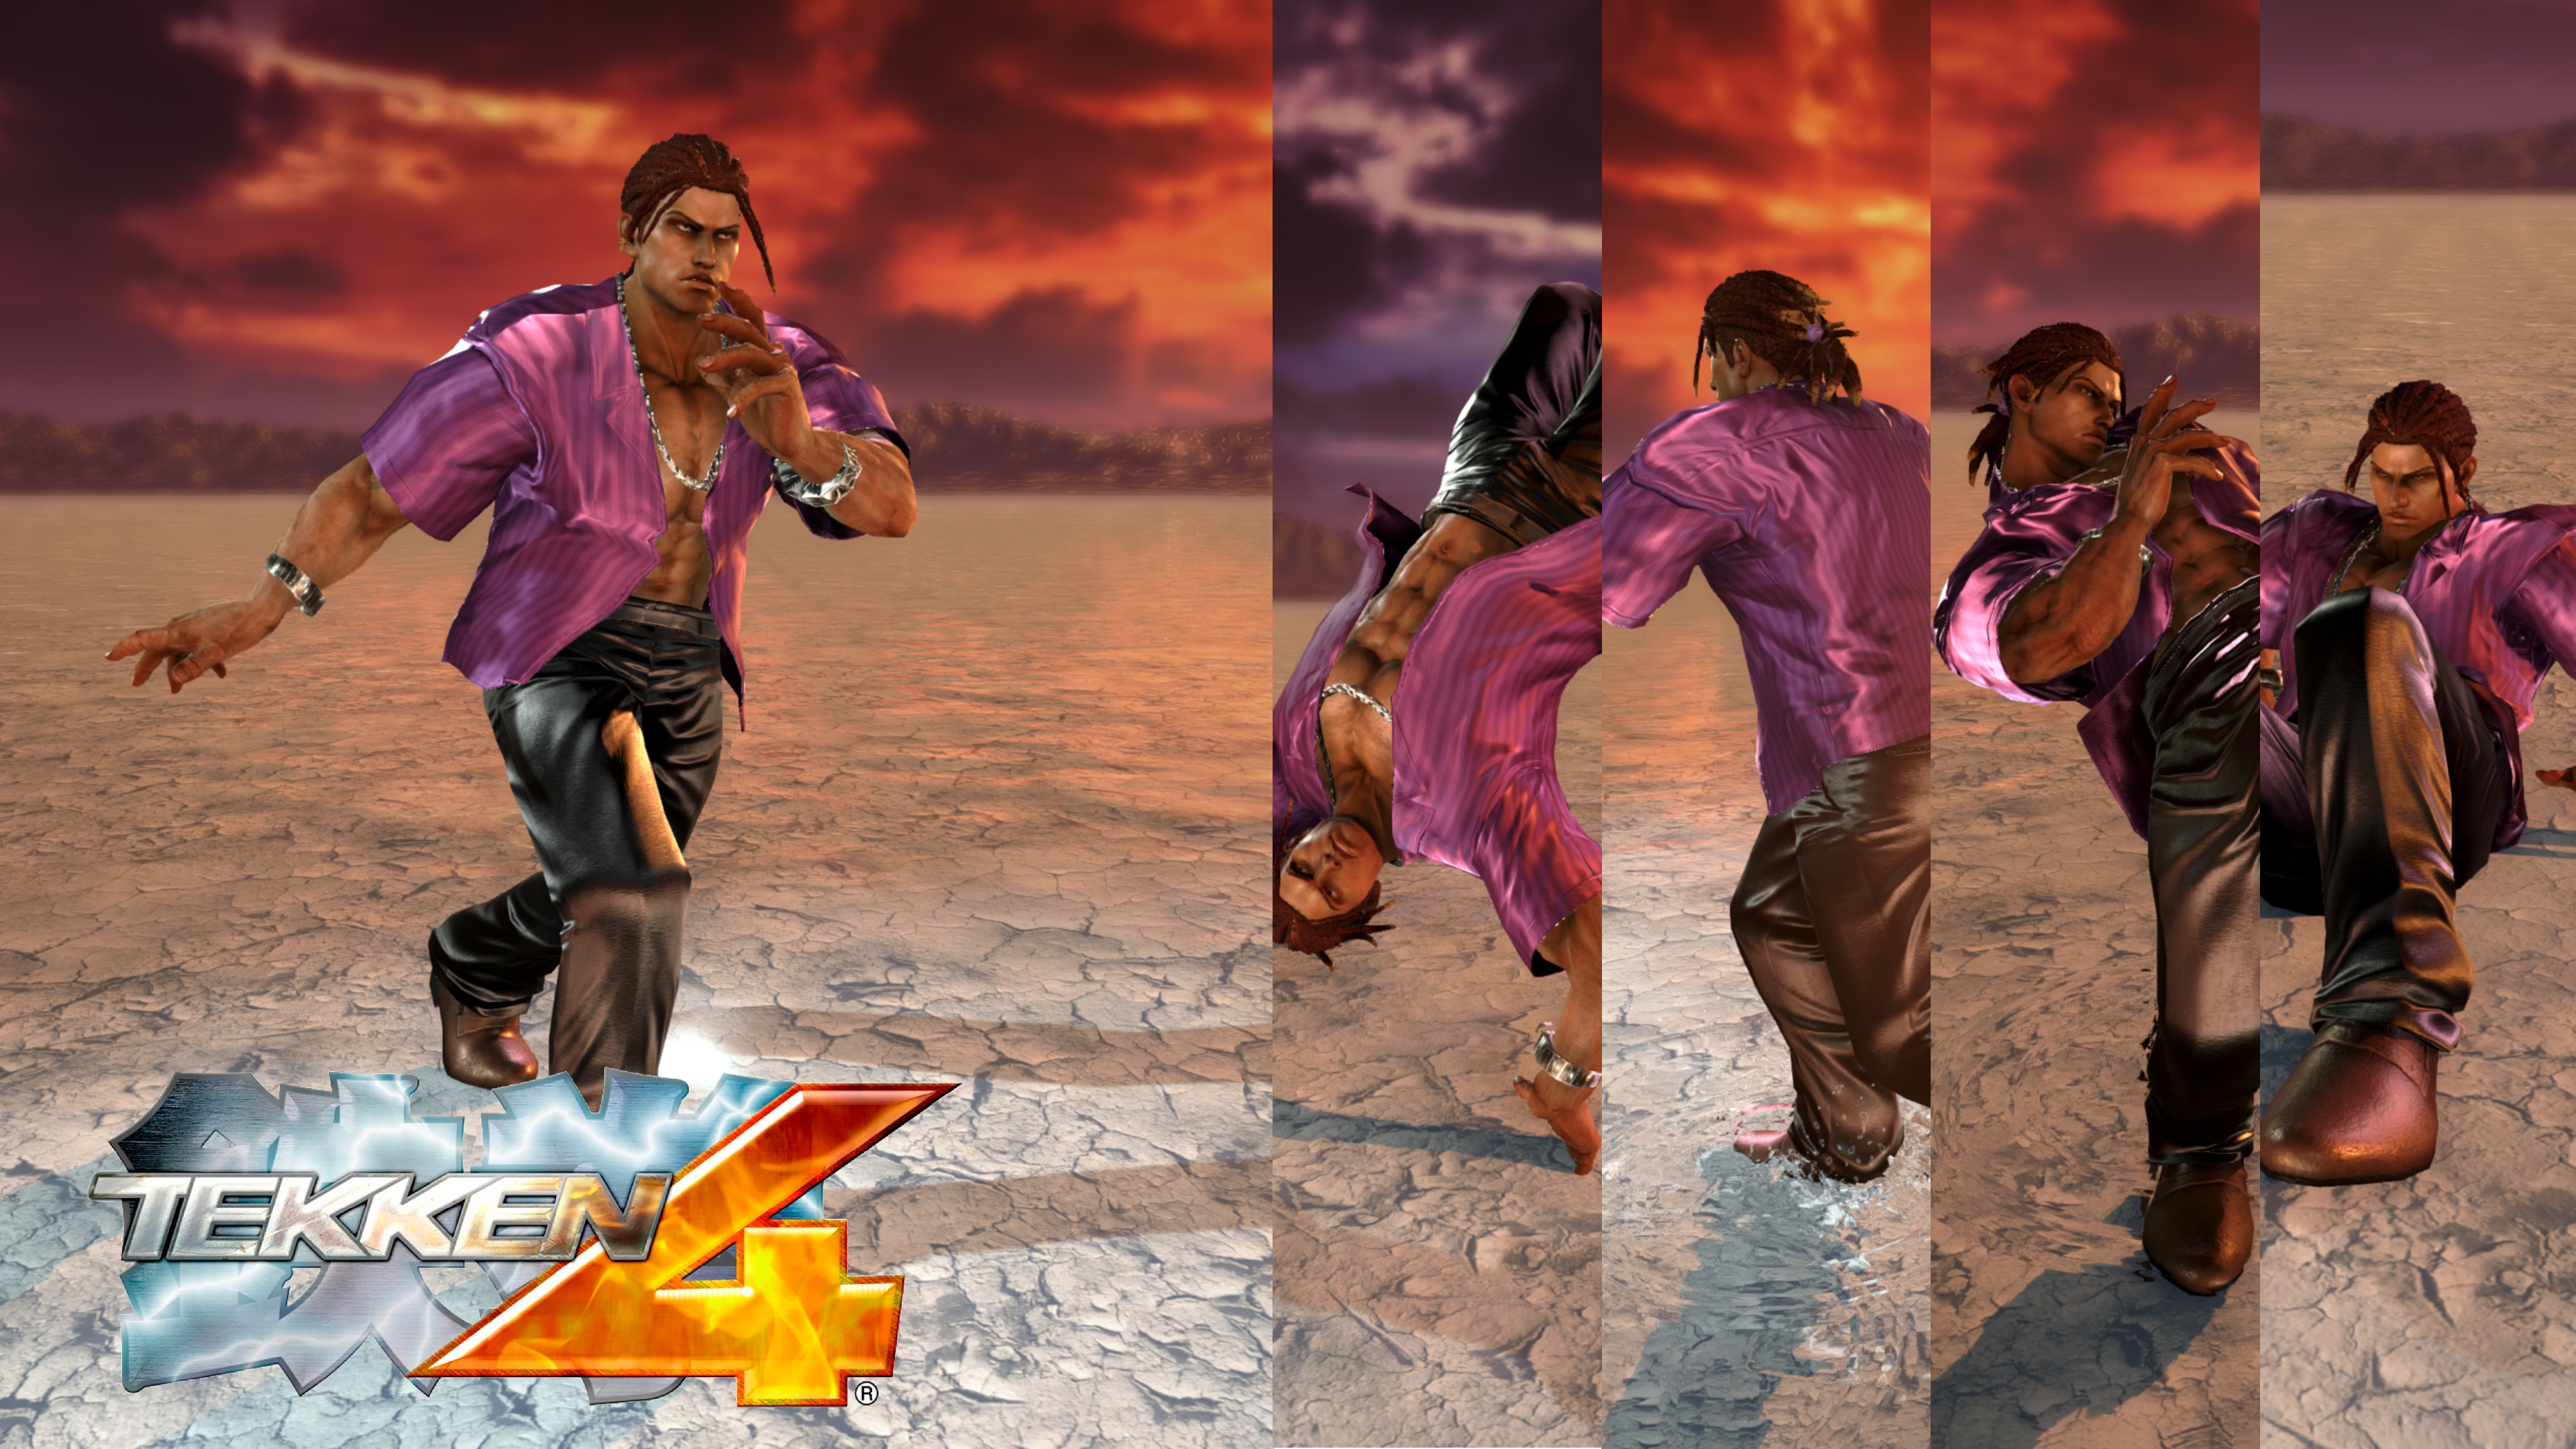 tekken 4 inspired eddy gordo by thei3arracuda on deviantart tekken 4 inspired eddy gordo by